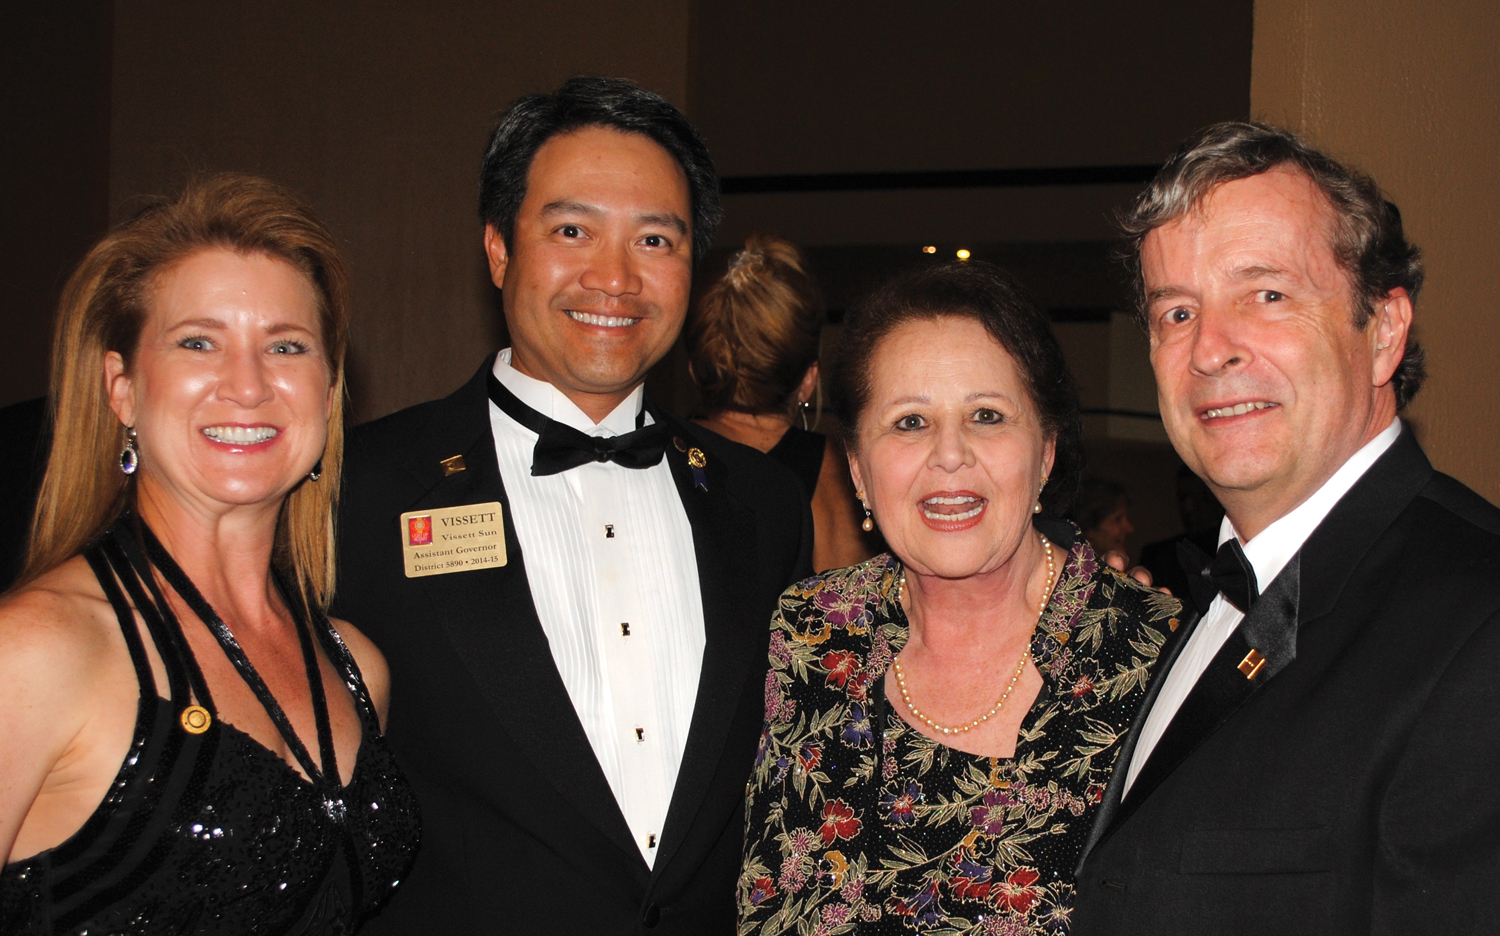 Dr. Vissett Sun and his wife, Adrienne, left, talk over old times with Donnie Johnson and Geoff Atwater at the Space Gala. Sun, Johnson and Atwater are all former Space Center Rotary presidents.